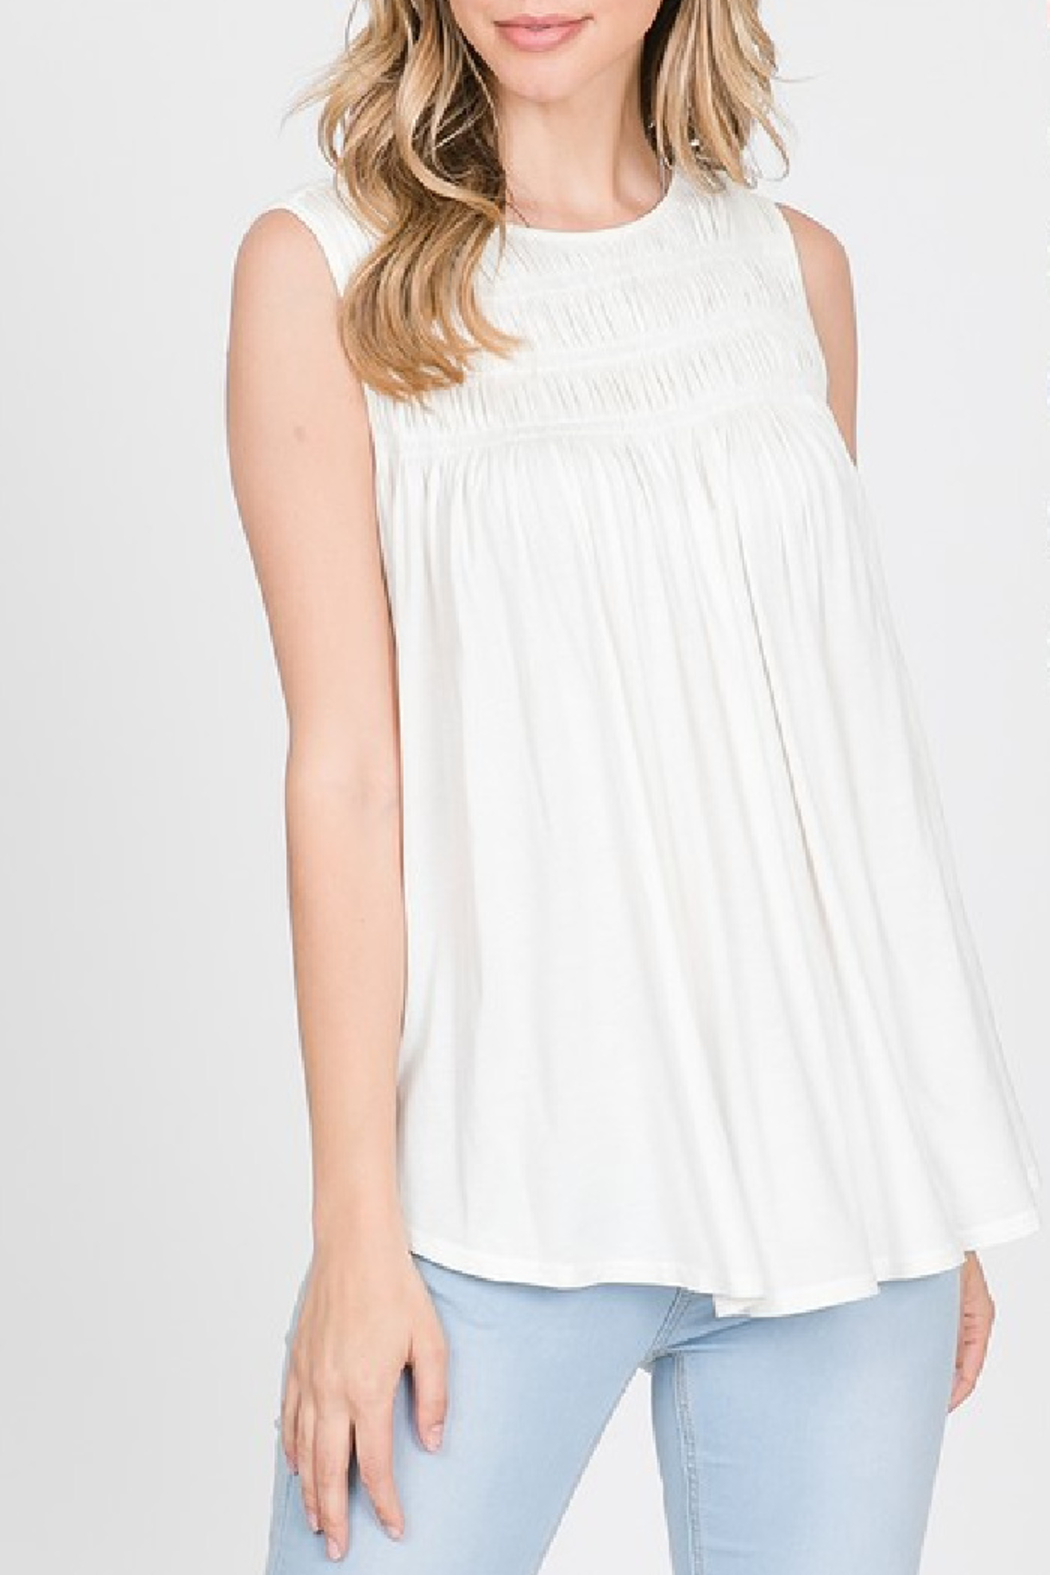 Allie Rose Perfectly Smocked Tank - Front Cropped Image